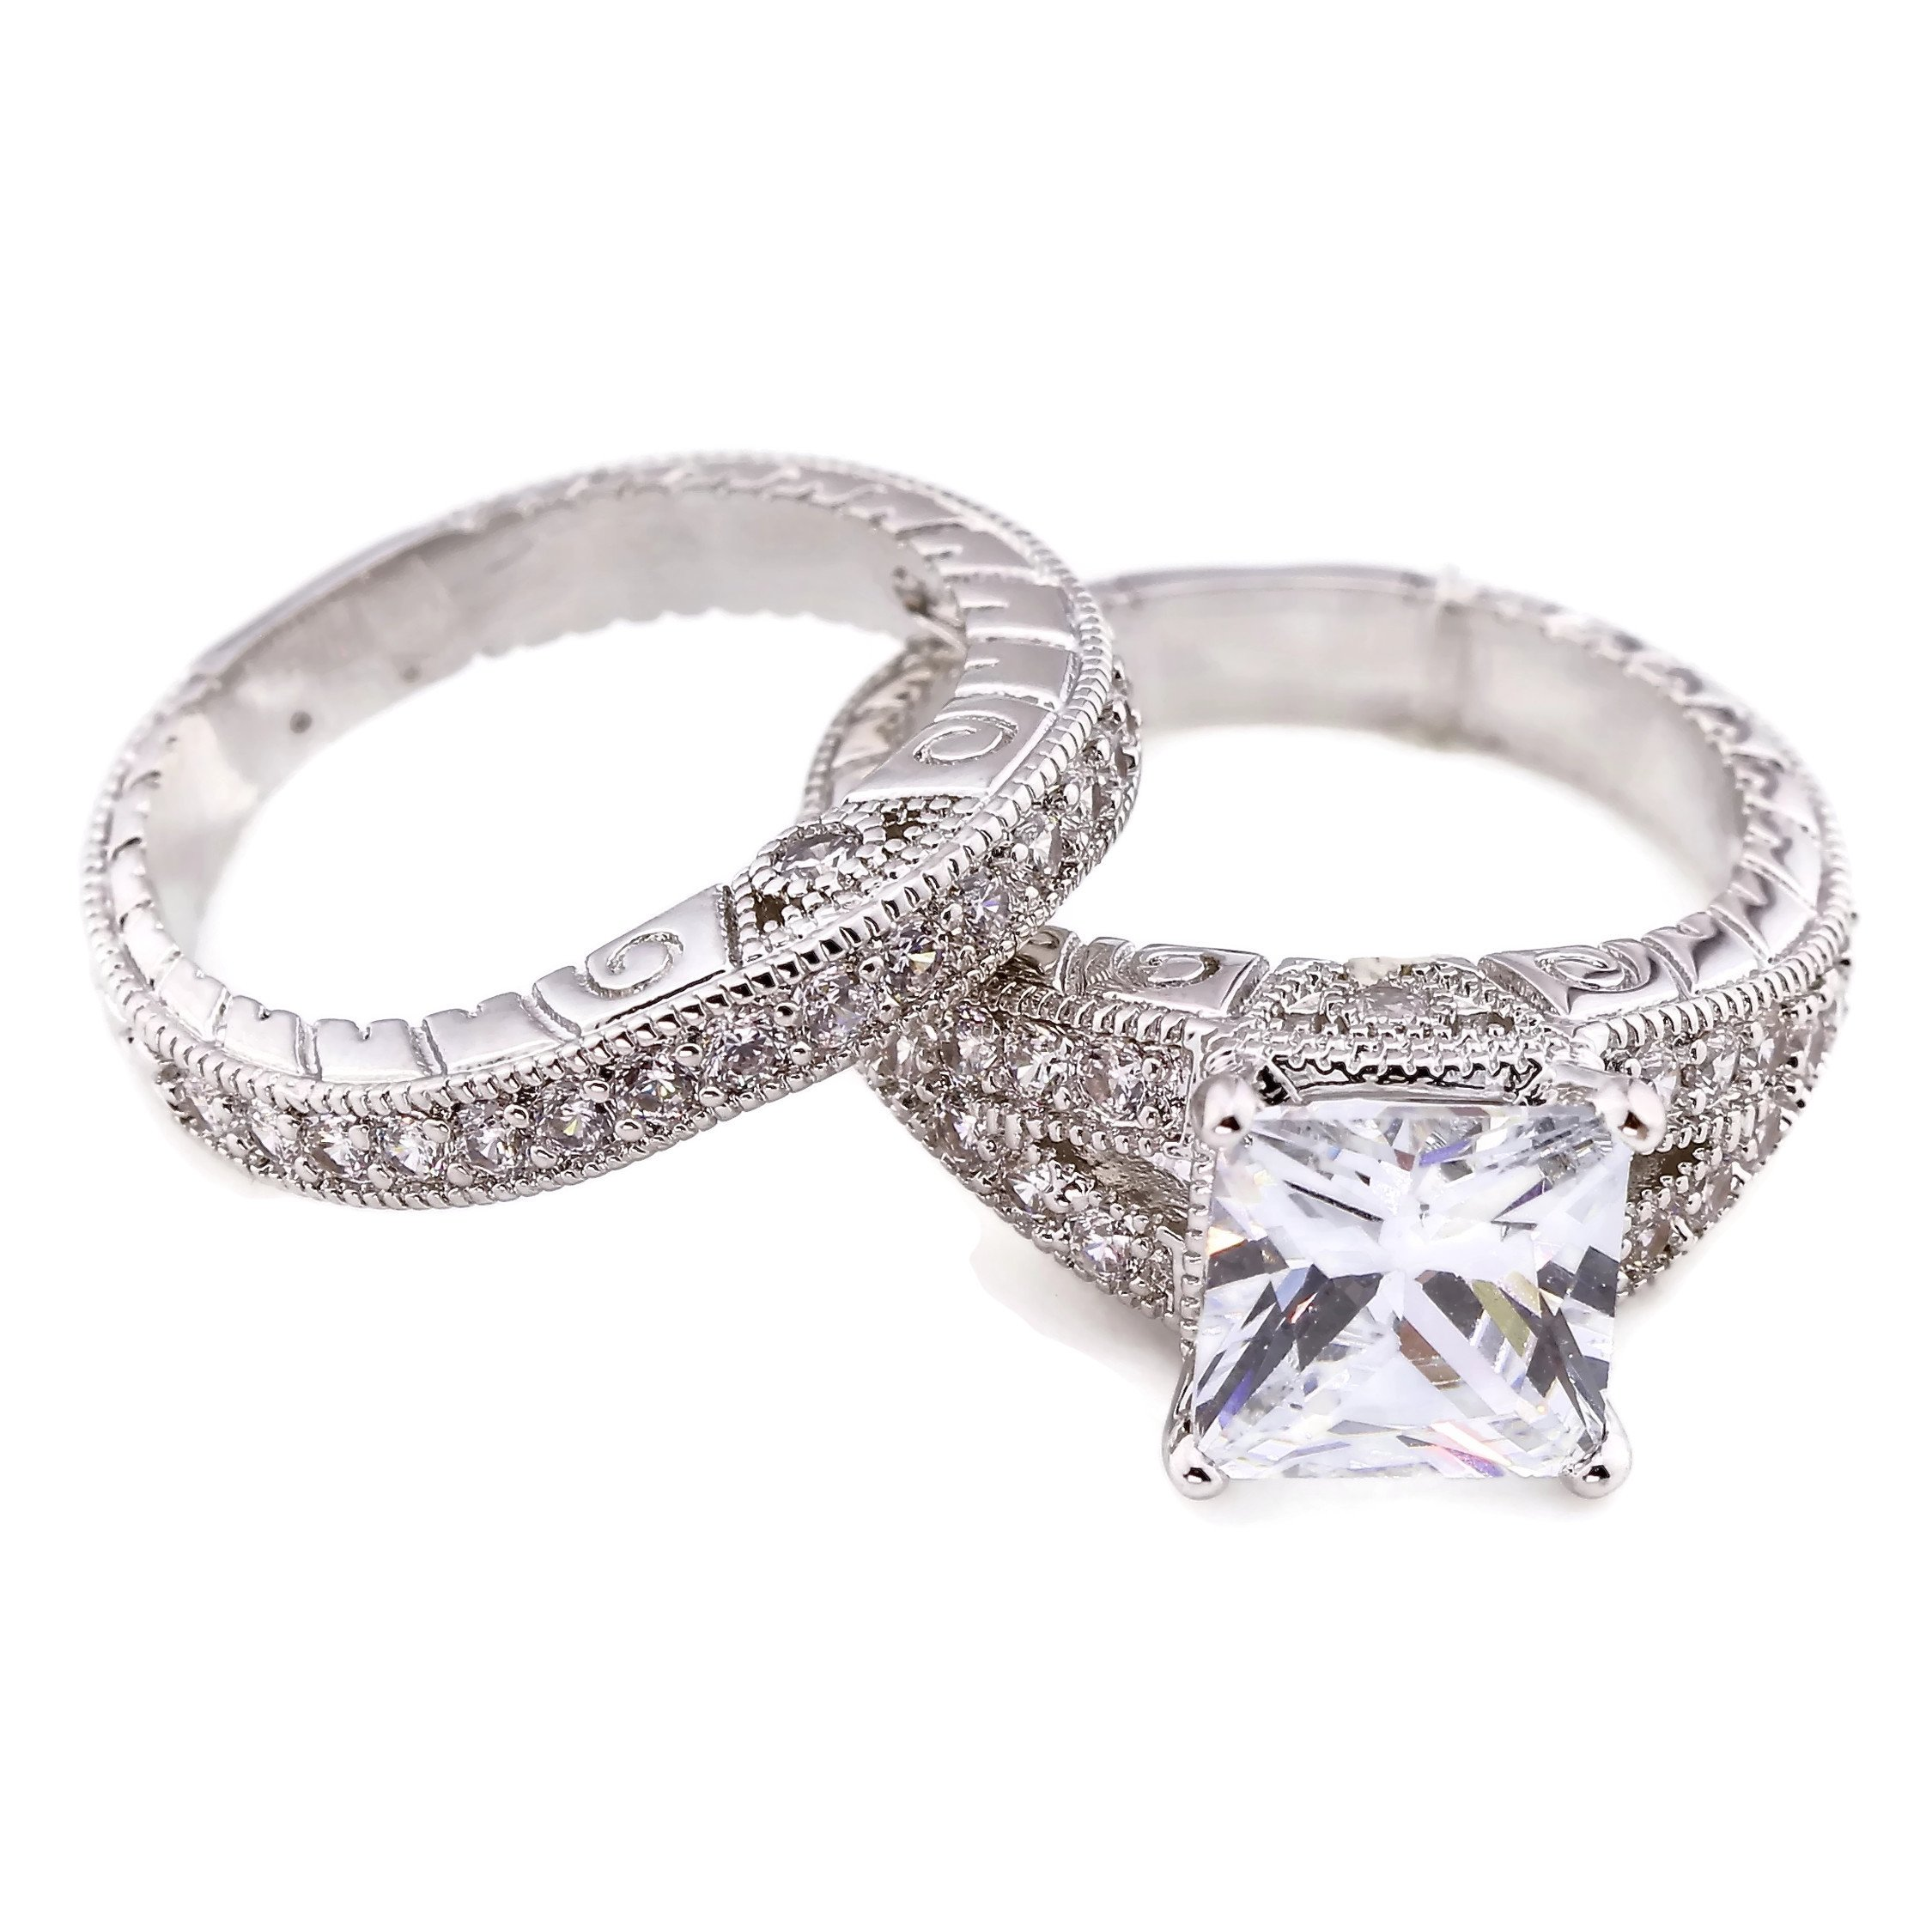 My Jewelry Passion Hand Engraved 2CT Princess Cut Antique Style Cubic Zirconia CZ Engagement Wedding Ring Set Size 8